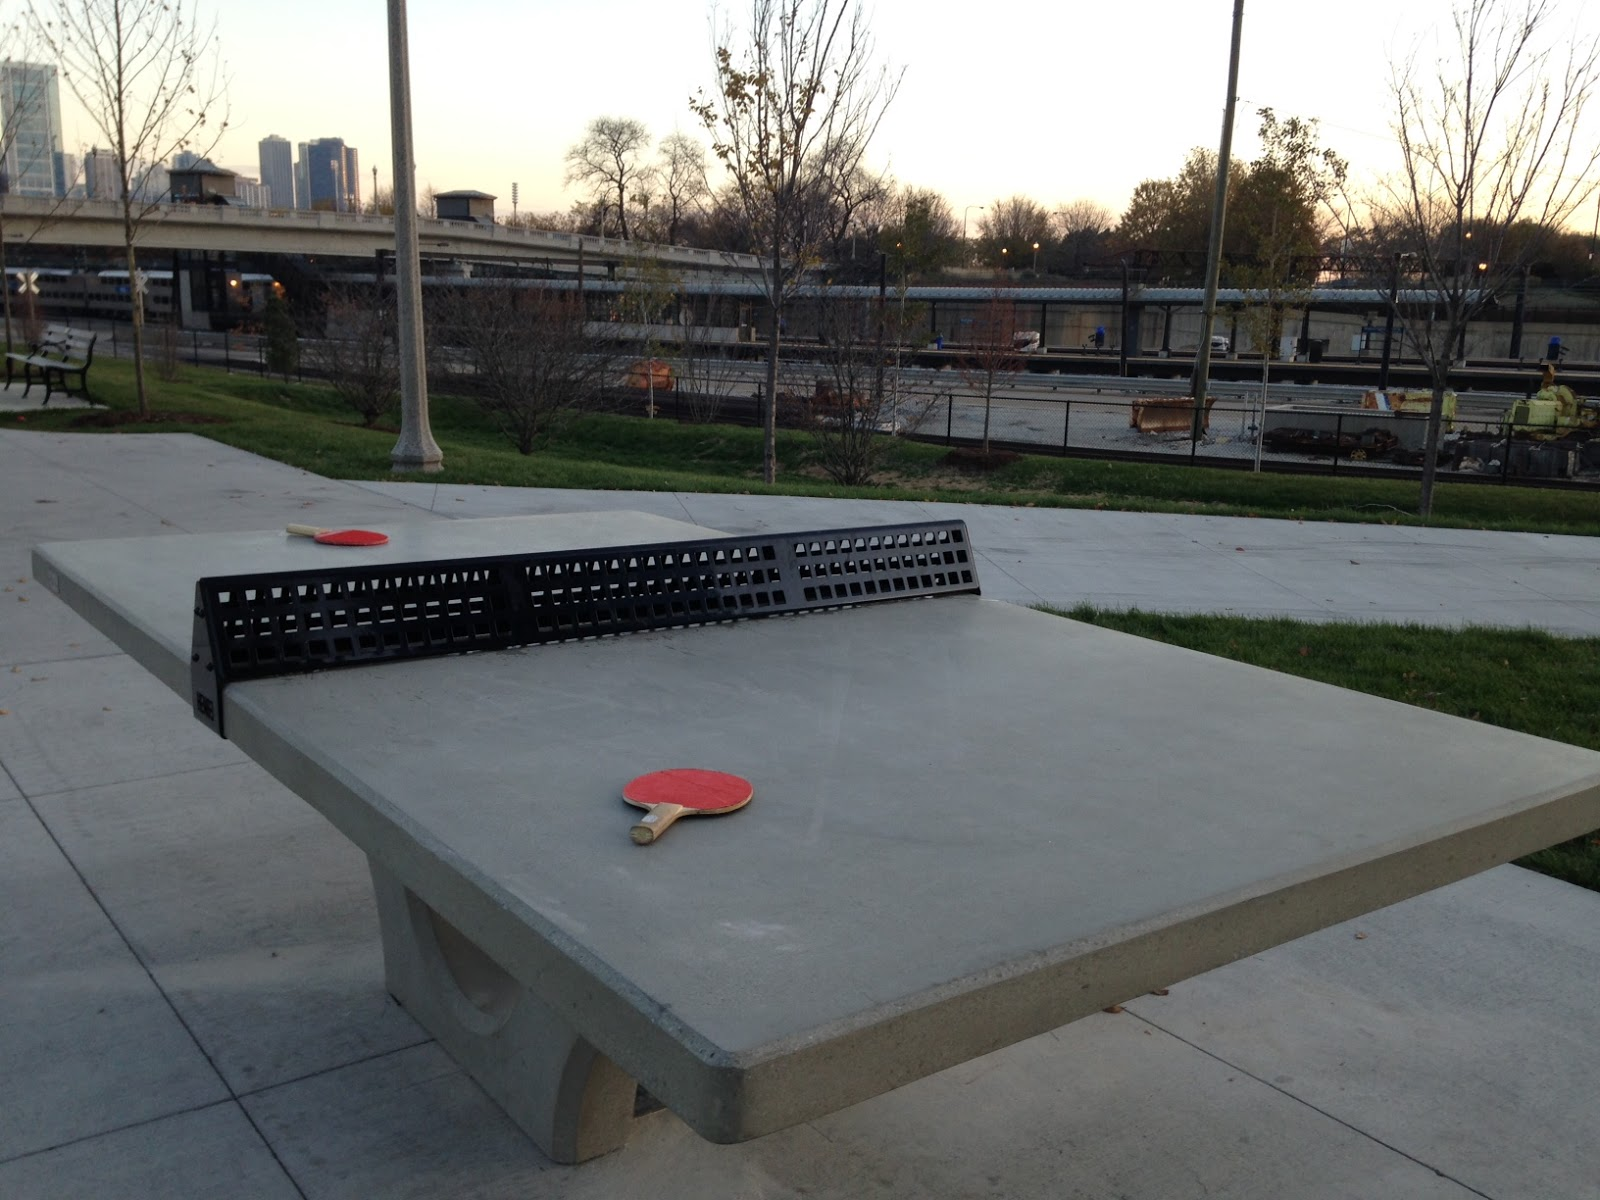 Outdoor Ping Pong Table Installed At 1135 S. Michigan Ave. In Grant Park